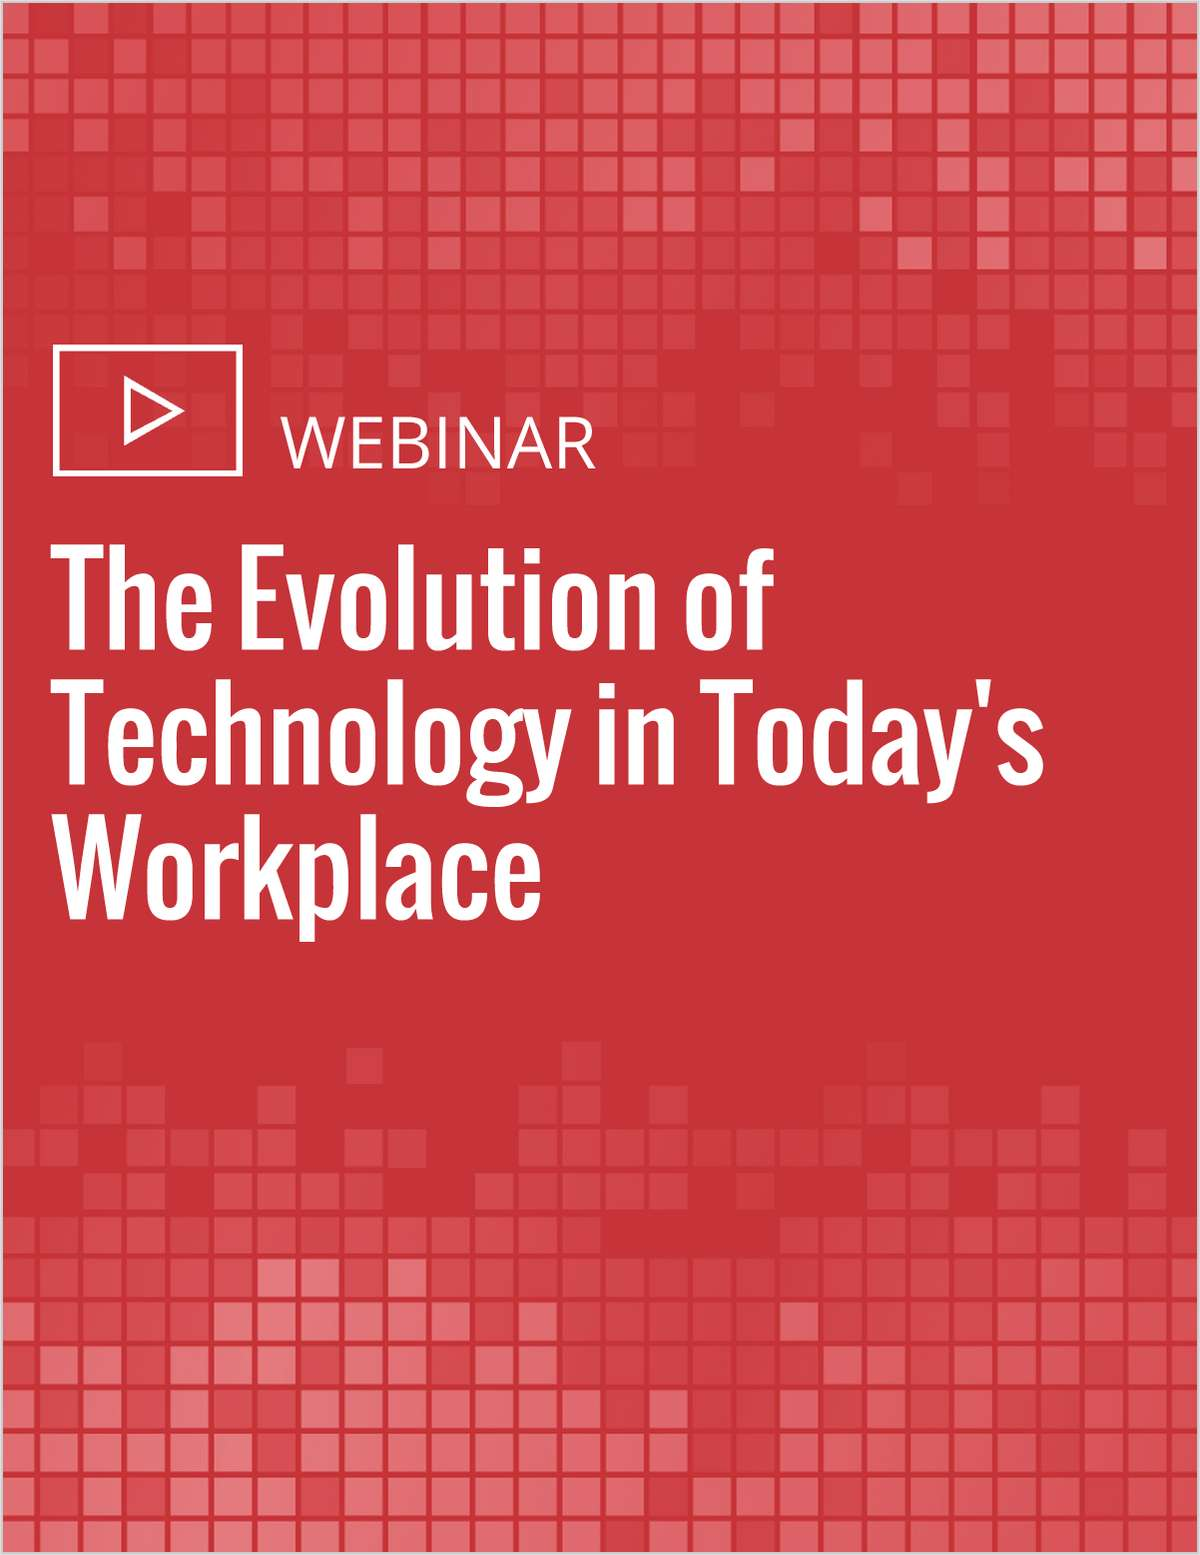 Webinar: The Evolution of Technology in Today's Workplace